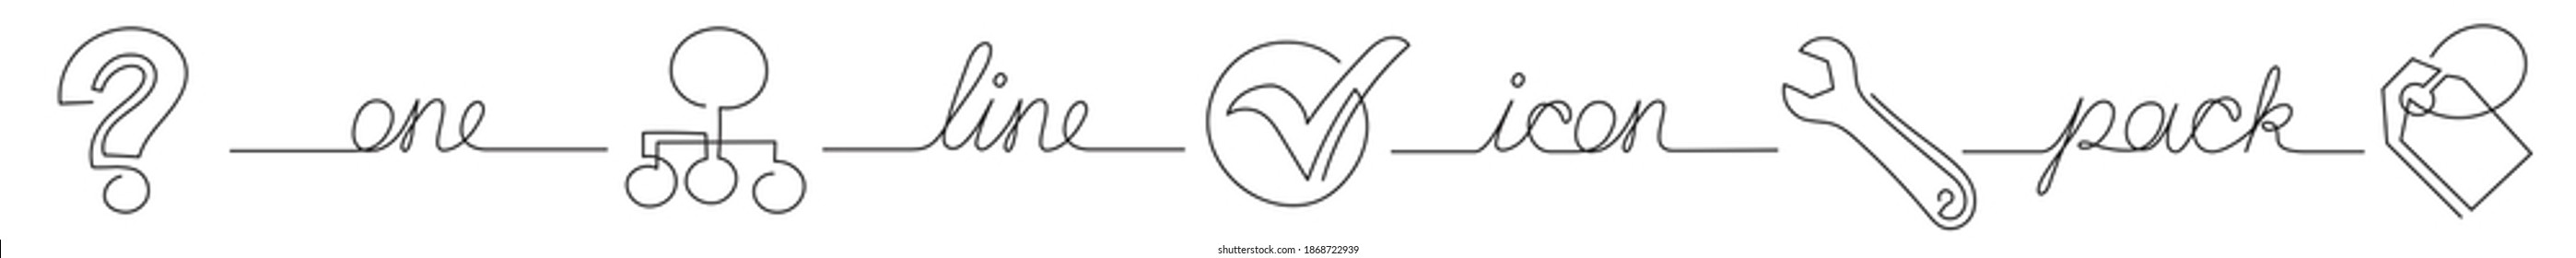 one line icon pack of question diagram tools mark label